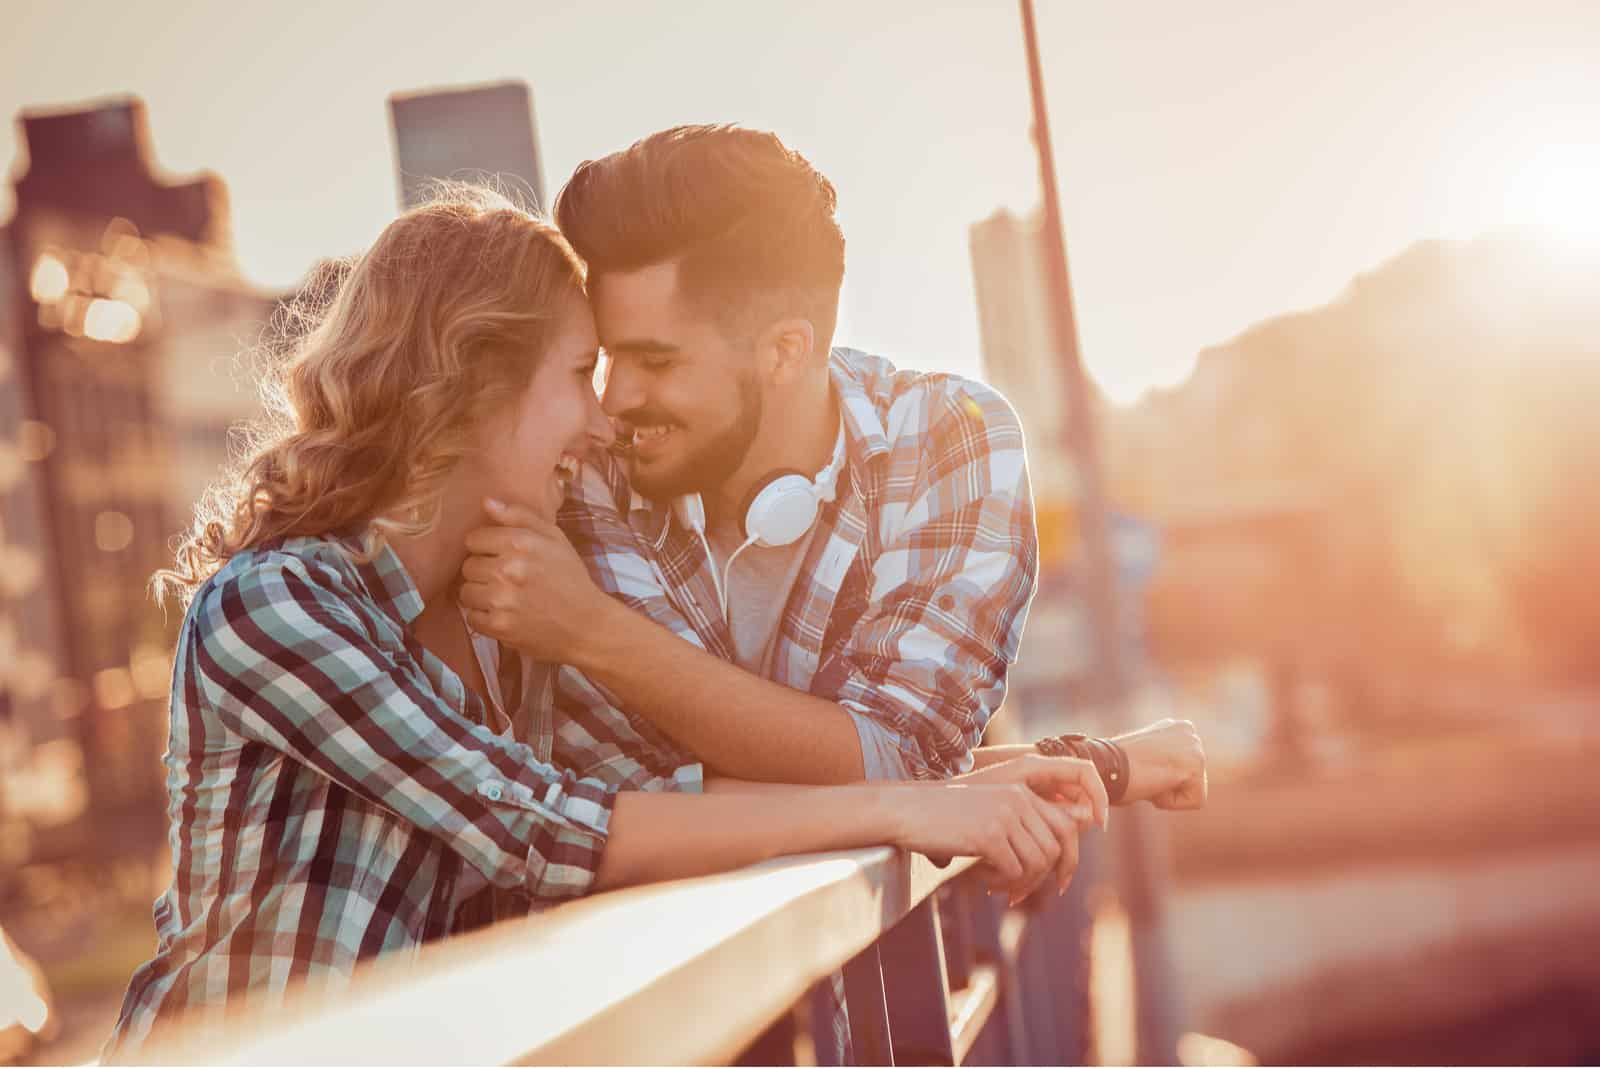 a man and a woman embrace on the bridge